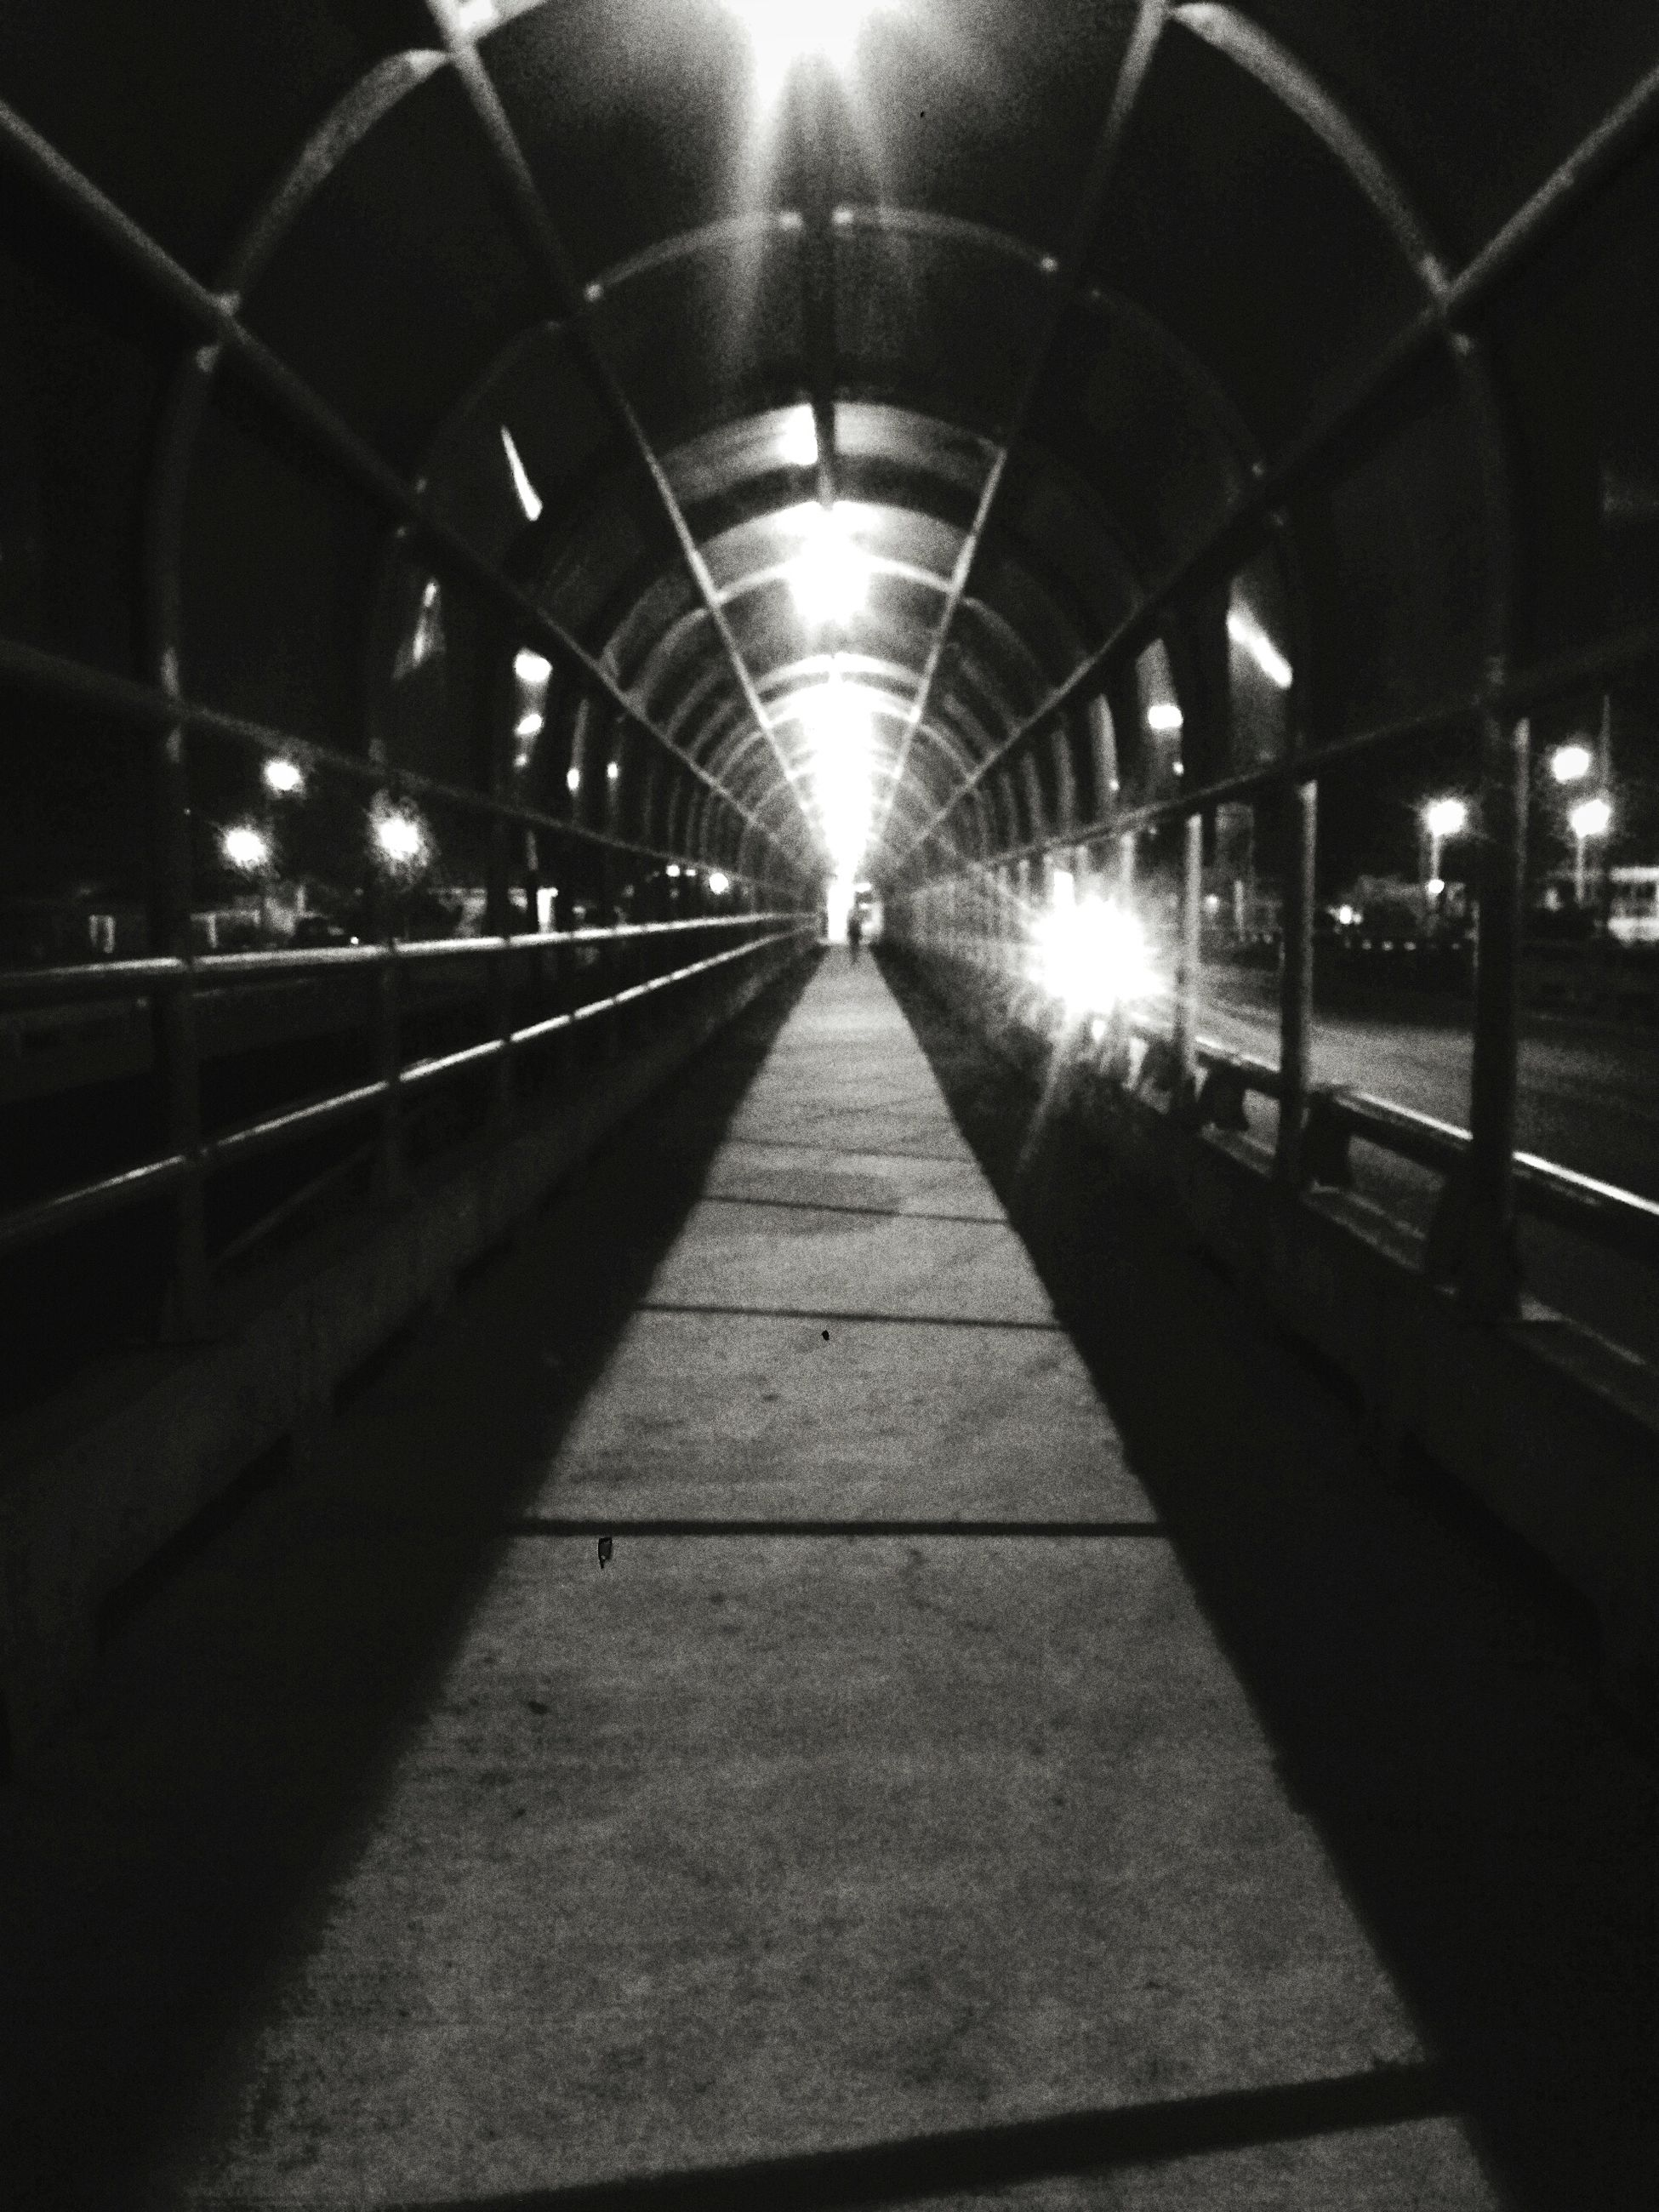 the way forward, illuminated, diminishing perspective, transportation, night, vanishing point, built structure, architecture, indoors, lighting equipment, empty, incidental people, surface level, tunnel, walkway, city, long, no people, railing, railroad track